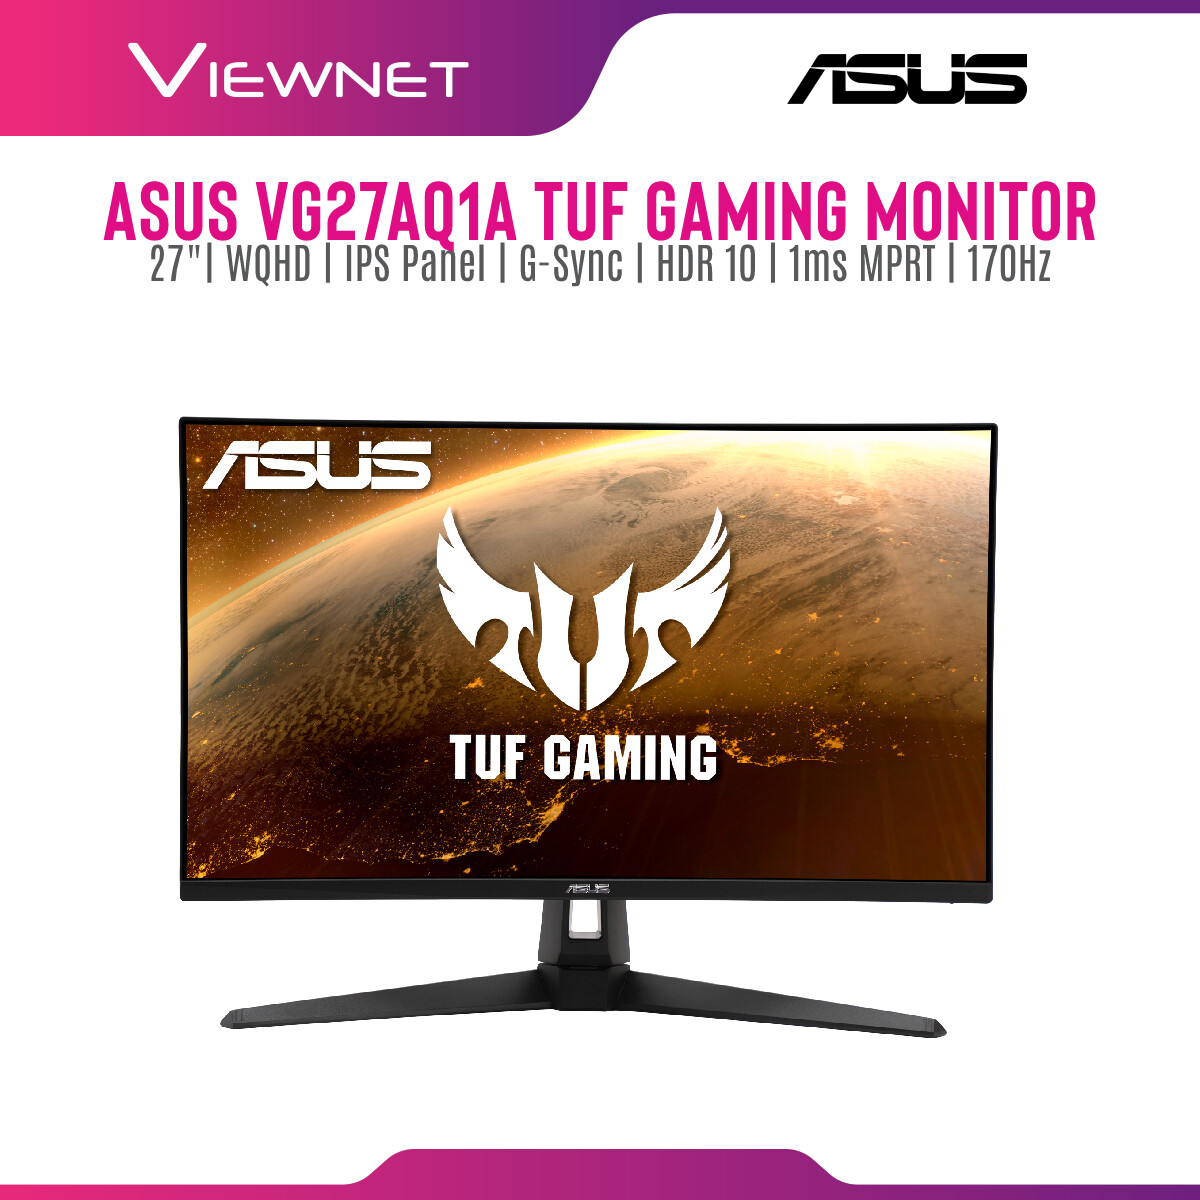 Asus TUF Gaming VG27AQ1A G-SYNC Compatible Gaming Monitor – 27 inch WQHD (2560 x 1440), IPS, 170Hz (Above 144Hz), 1ms MPRT, Extreme Low Motion Blur, G-SYNC Compatible, HDR 10